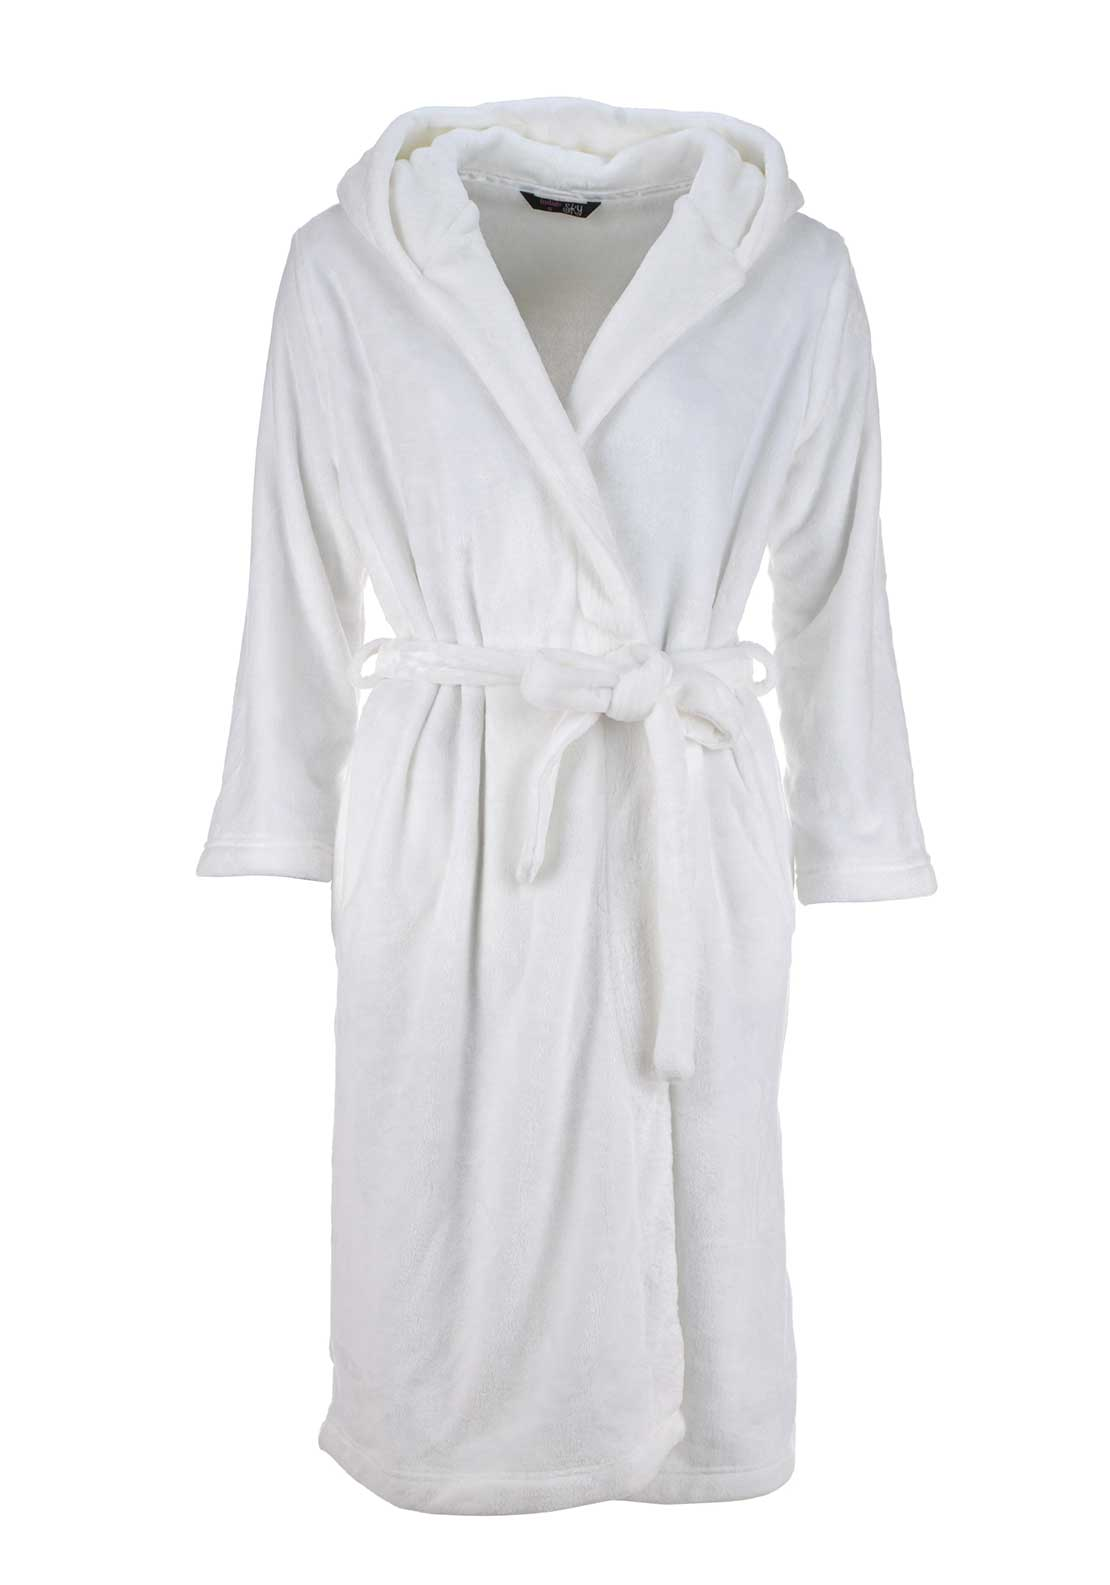 Indigo Sky Hooded Terry Dressing Gown, White